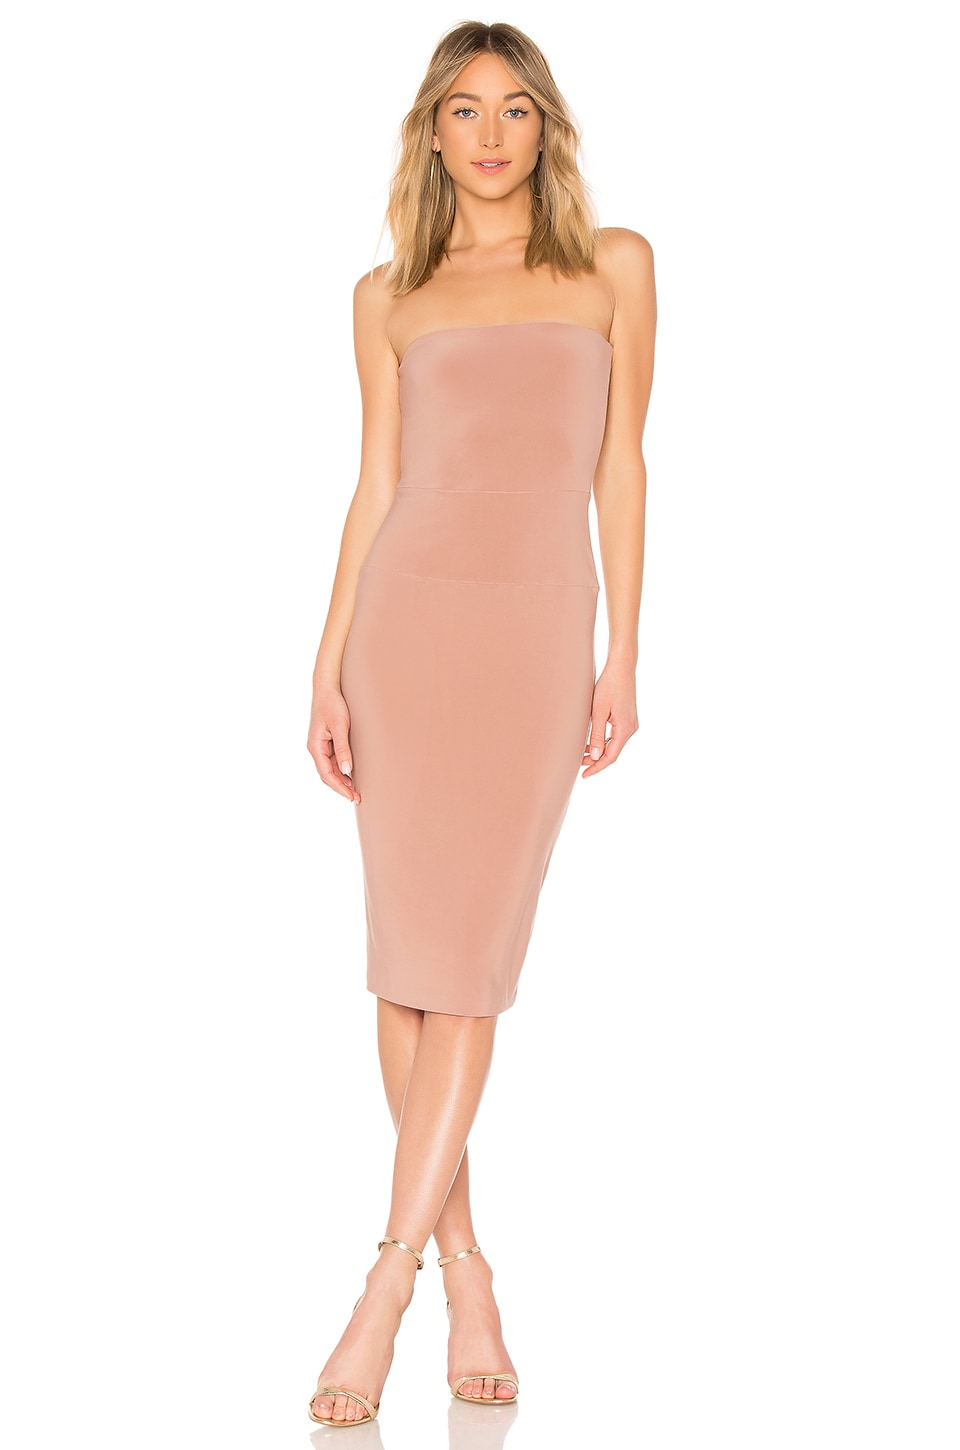 Norma Kamali x REVOLVE Strapless Dress in Rose Gold